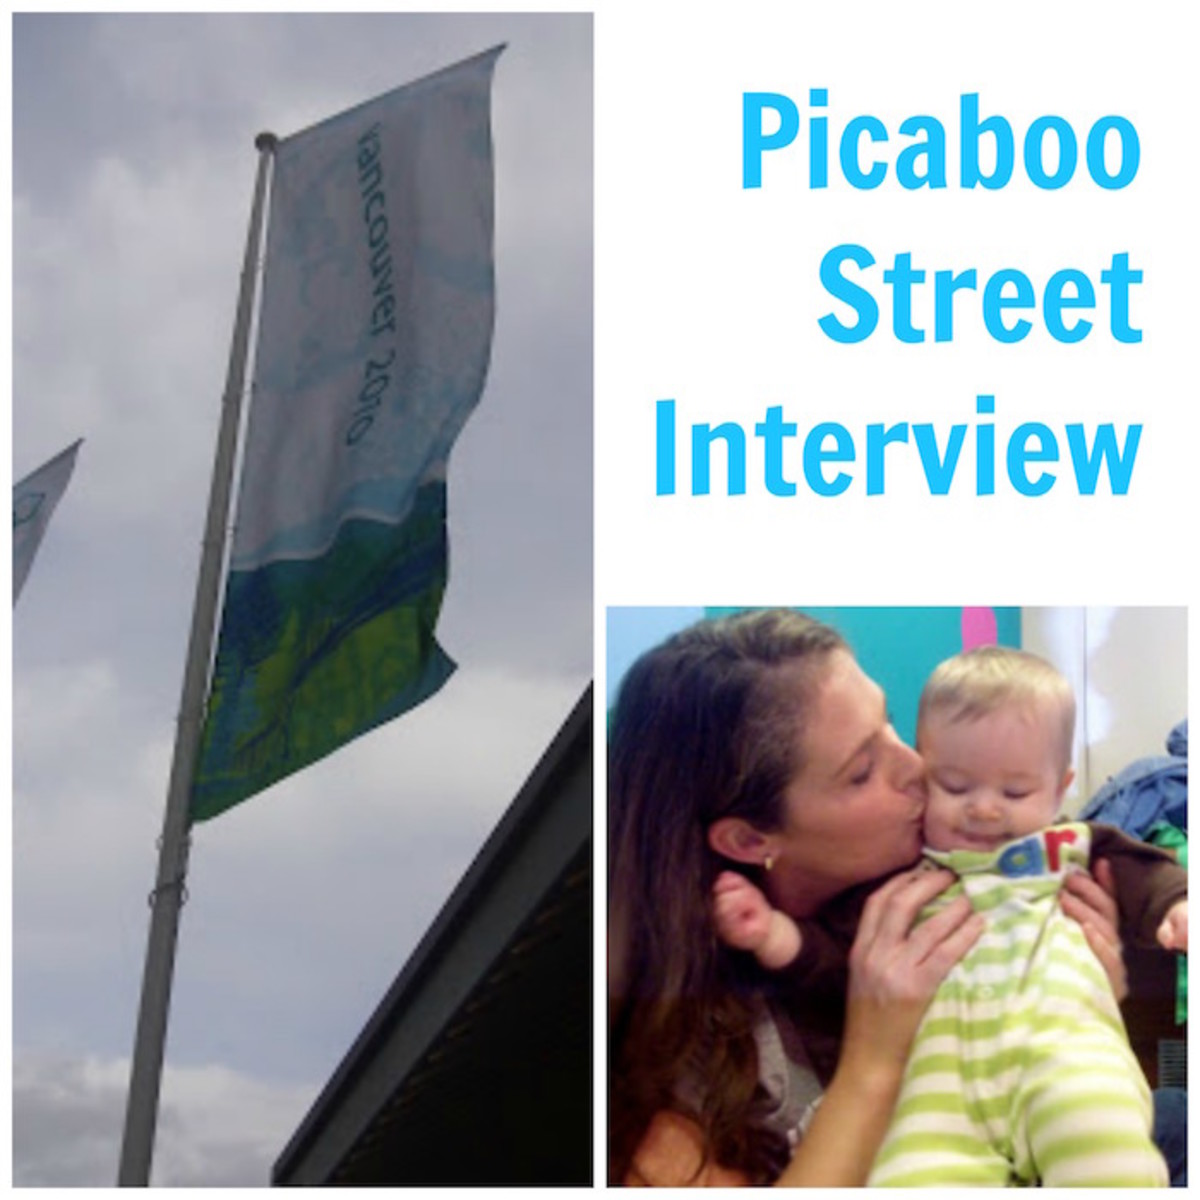 Picabo Street Interview